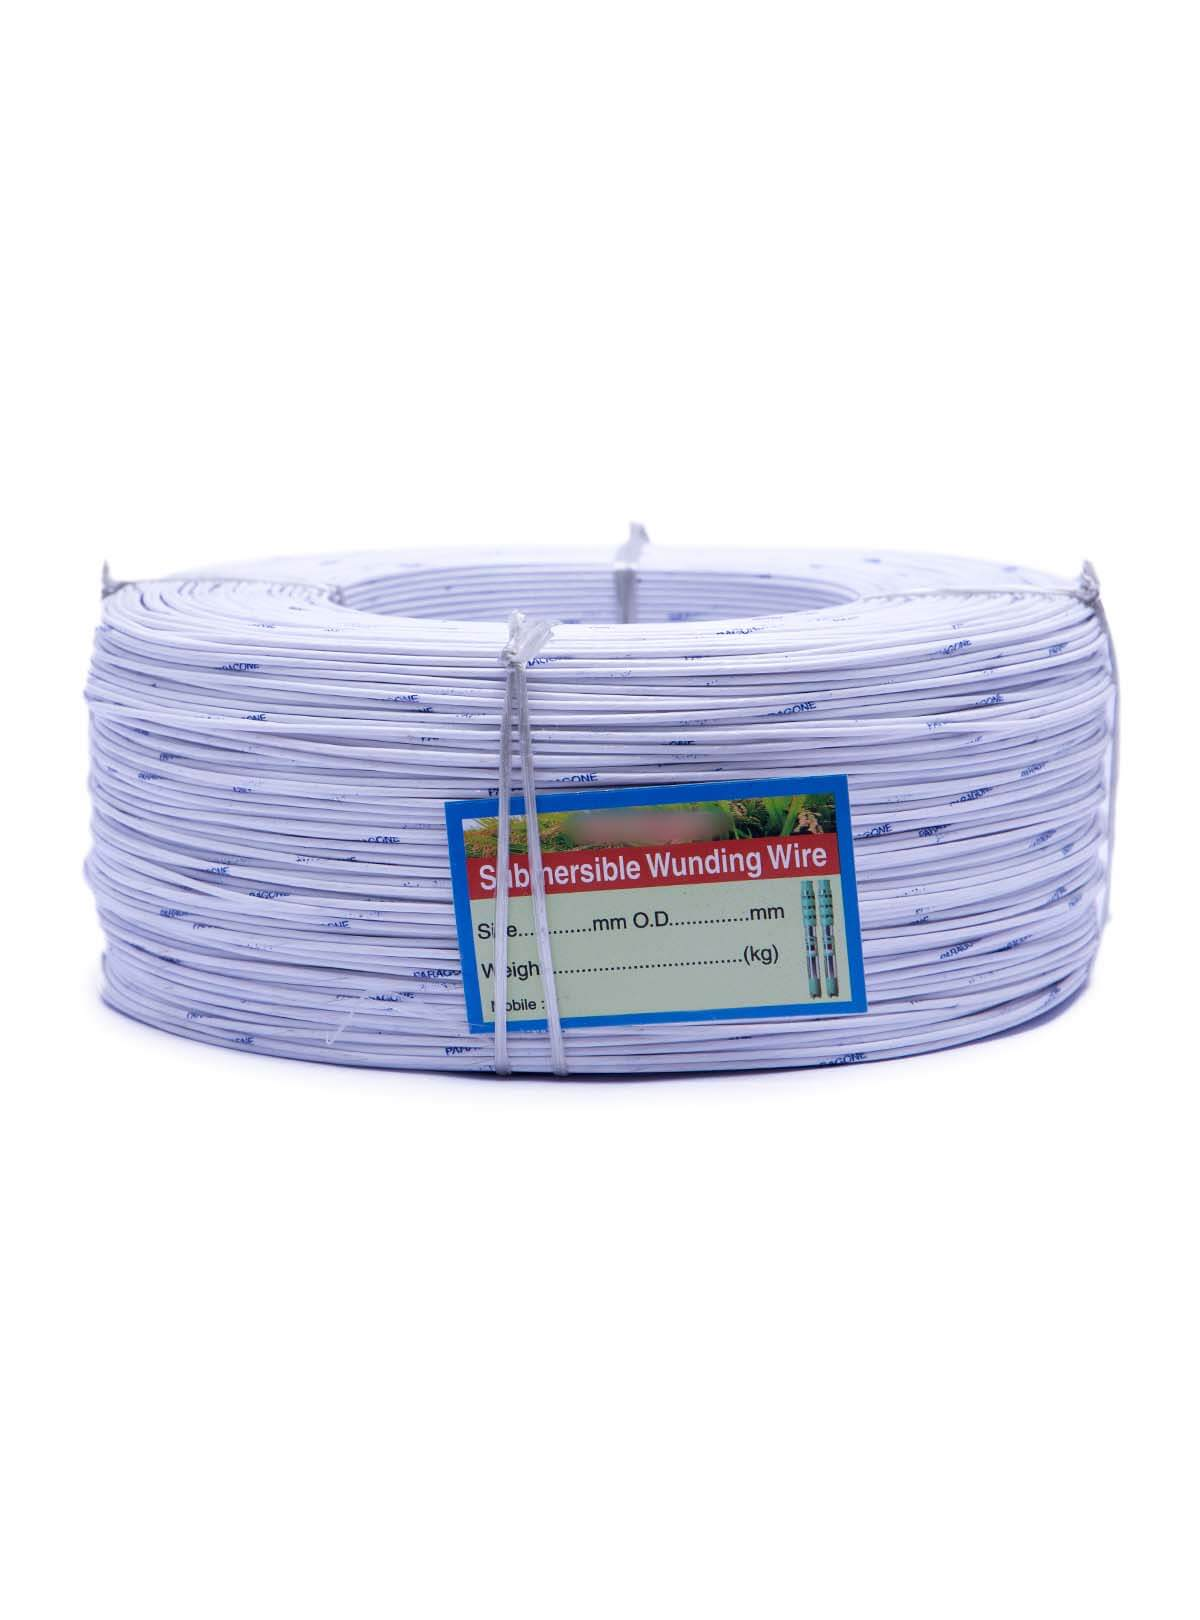 Winding Wire for Submersible Pumps (1 Kg)